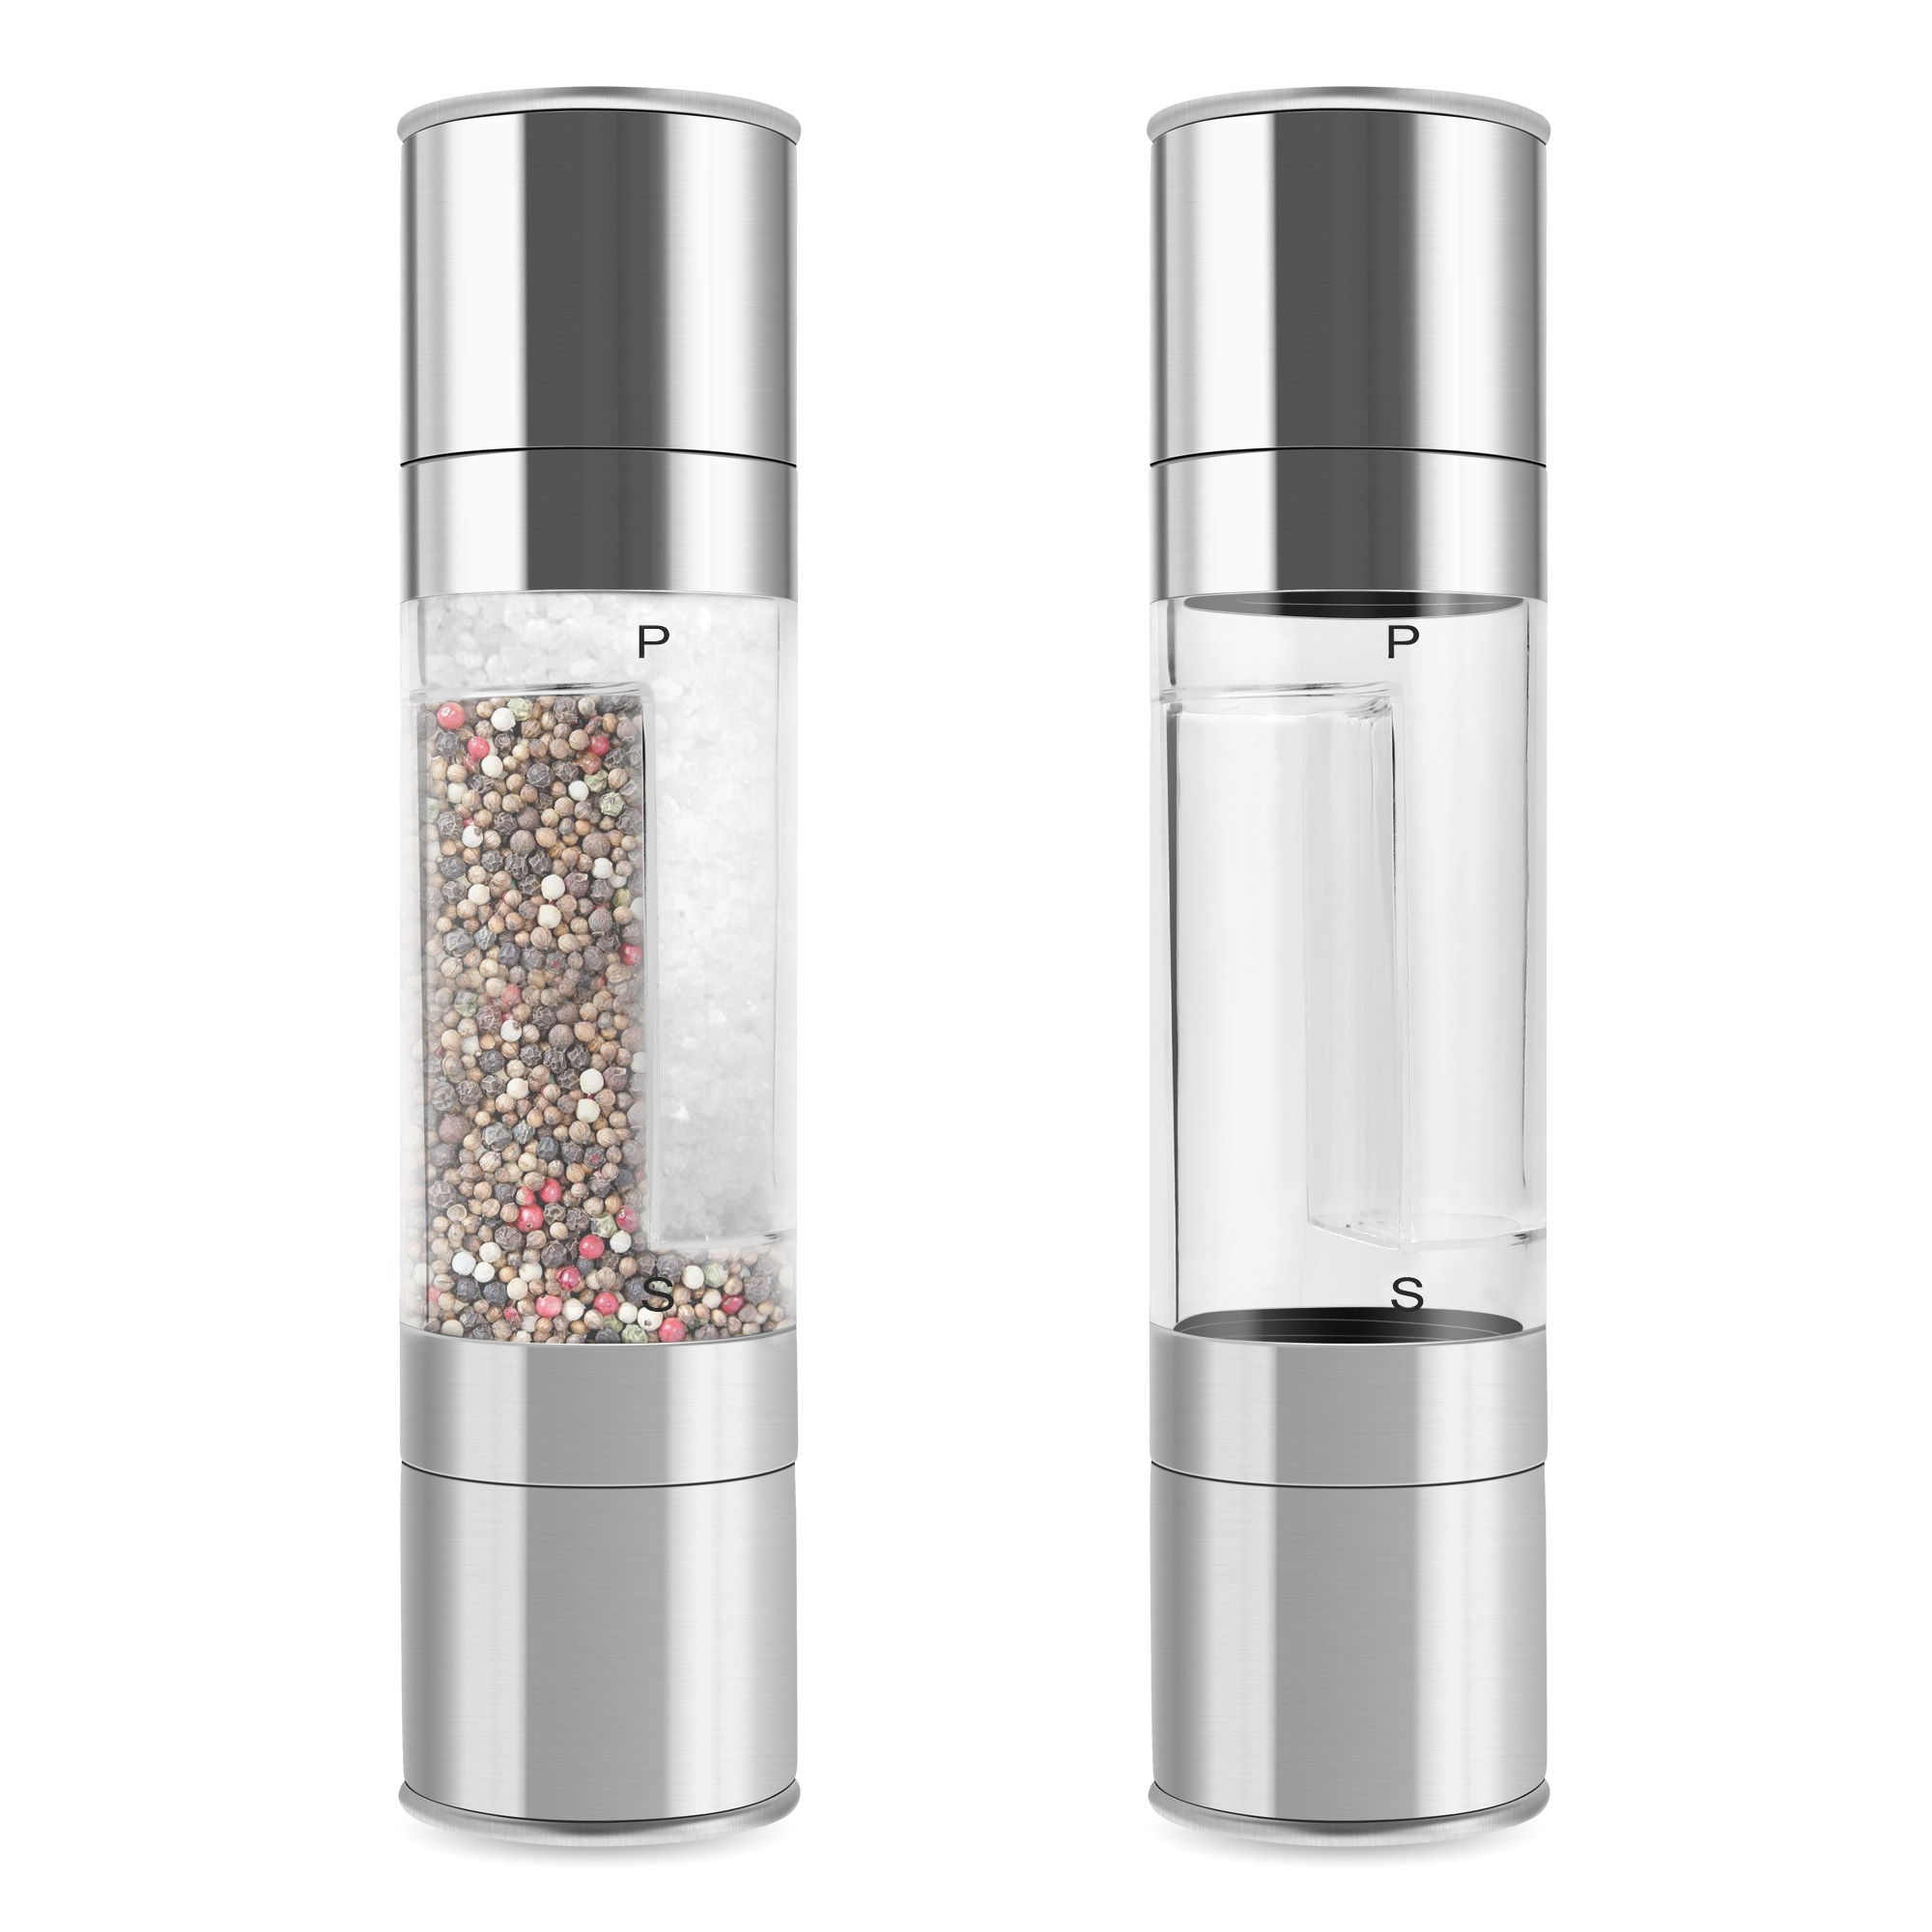 Click here to buy Homdox High Quality Pepper and Salt Grinder.